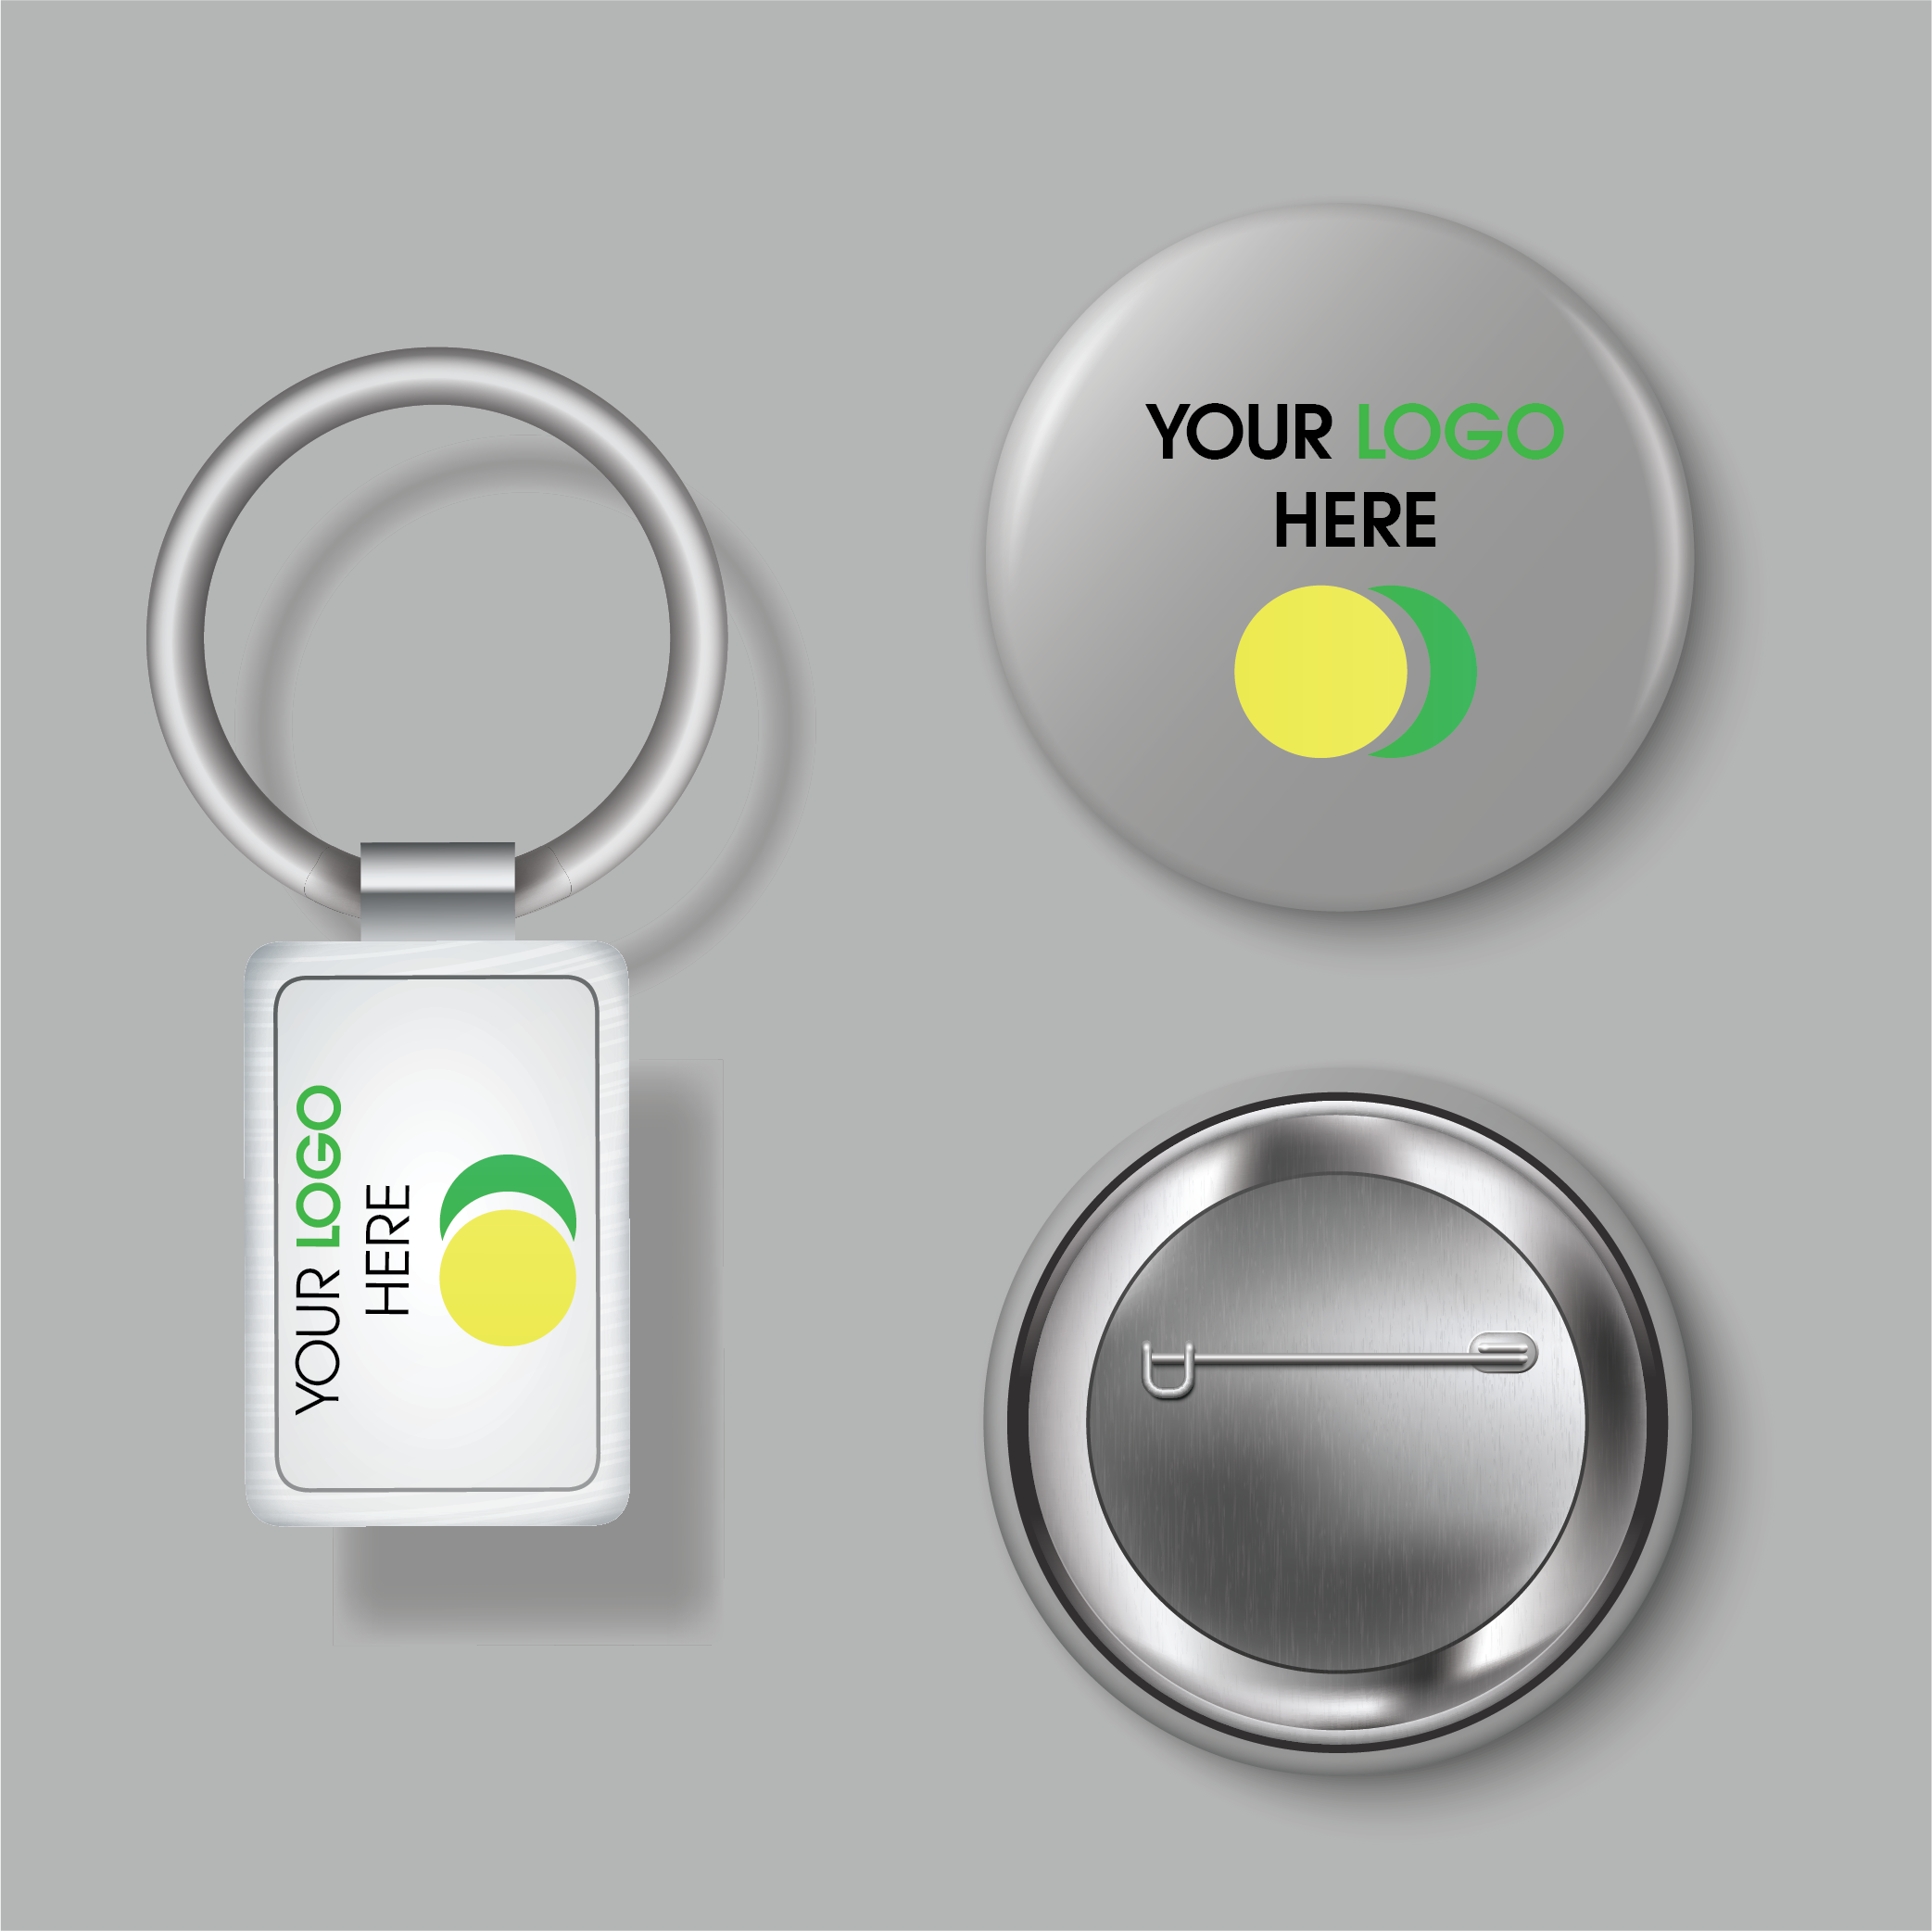 KEY CHAINS & BUTTONS